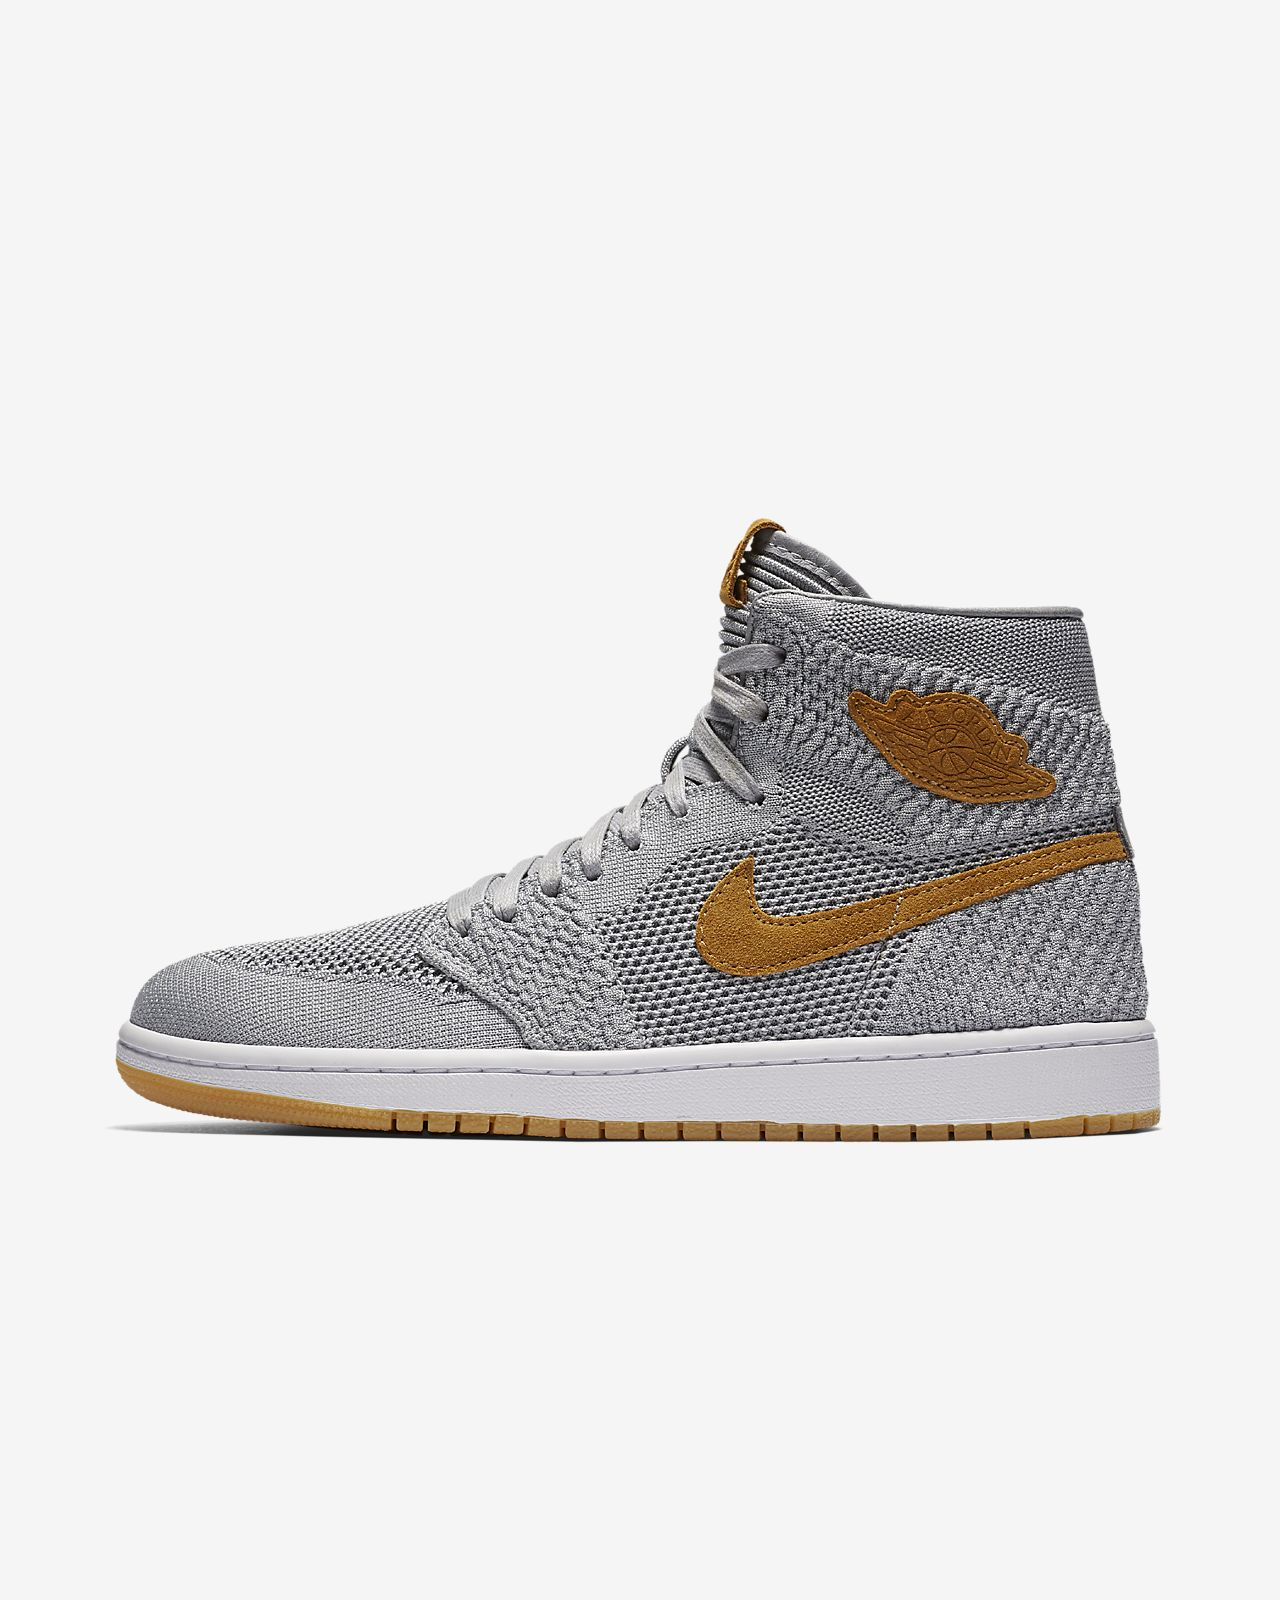 jordan 1 high mens shoes nz